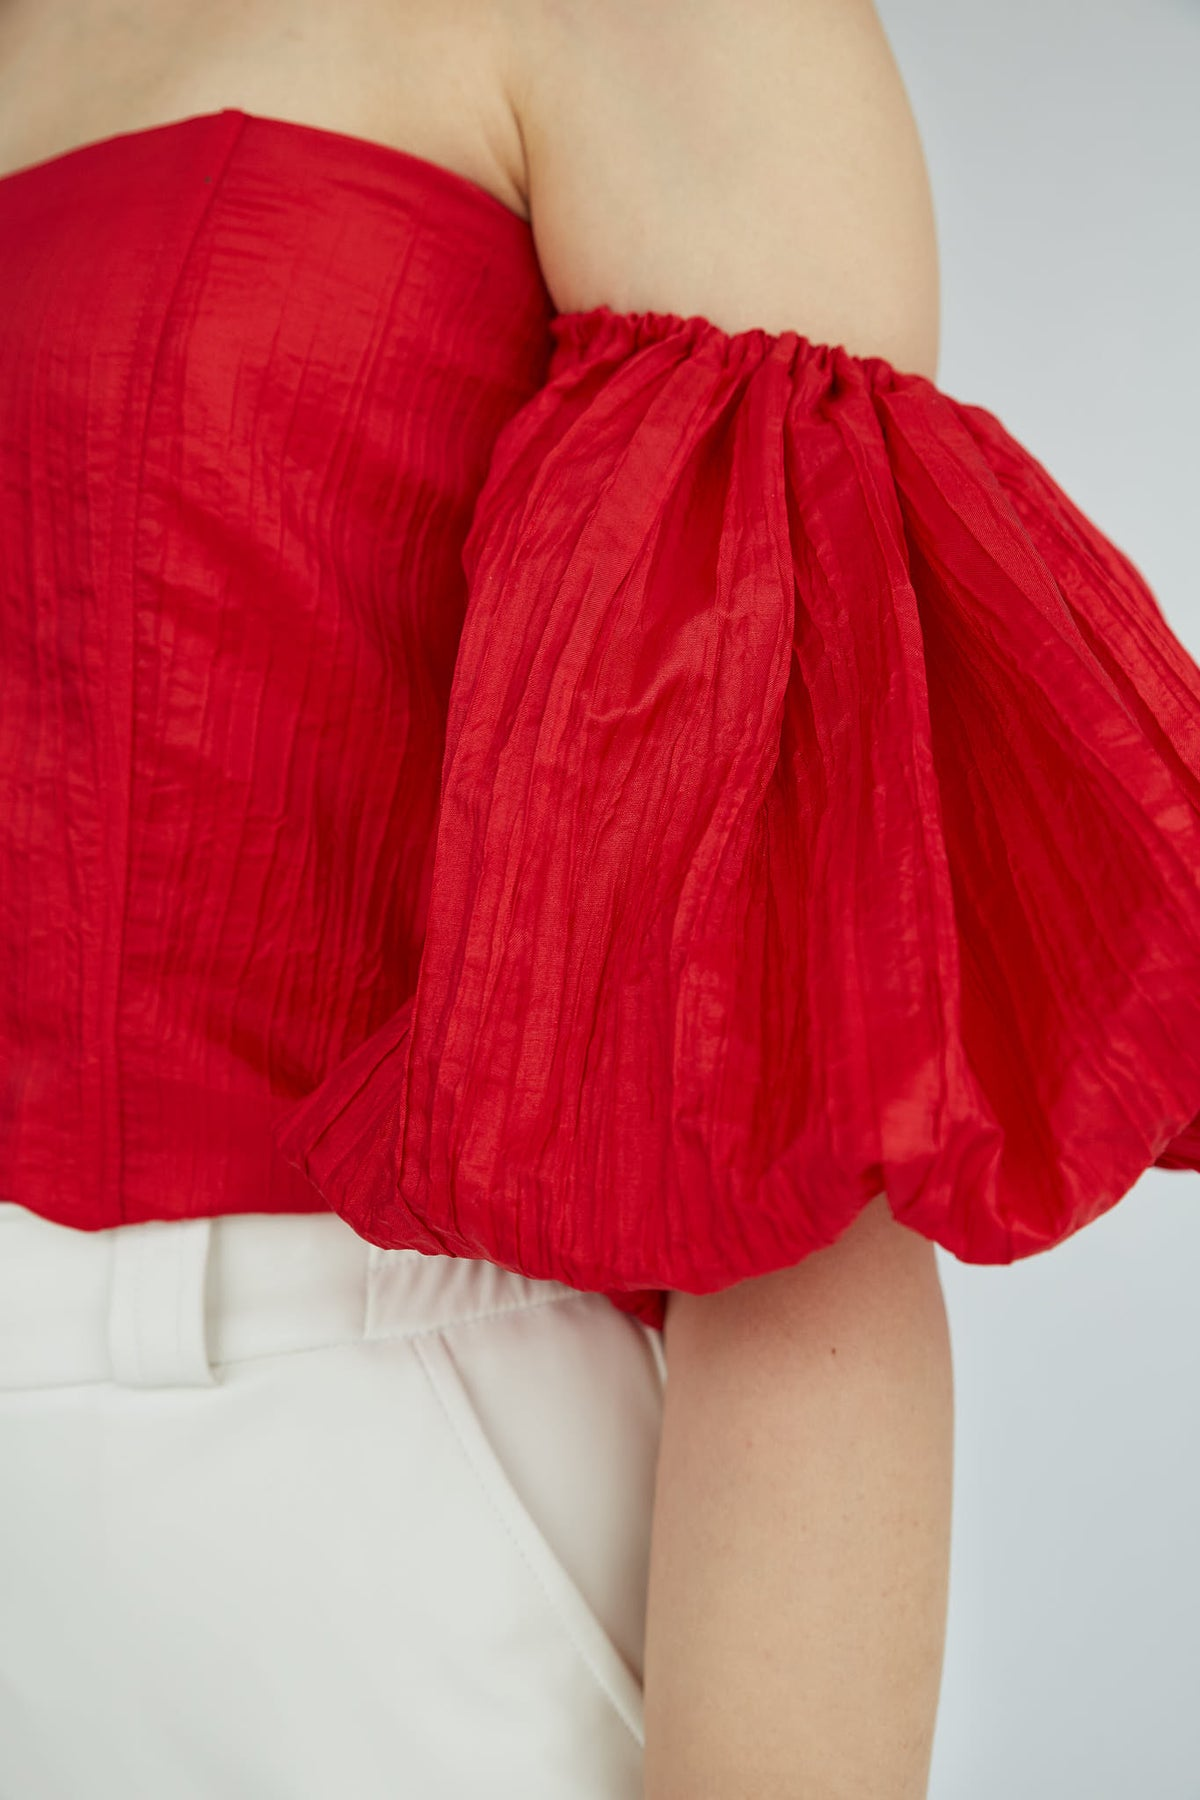 Frida-Red-Volume-Sleeve-Top-Le-Slap-Clothing-Off-Shoulder-details.jpg